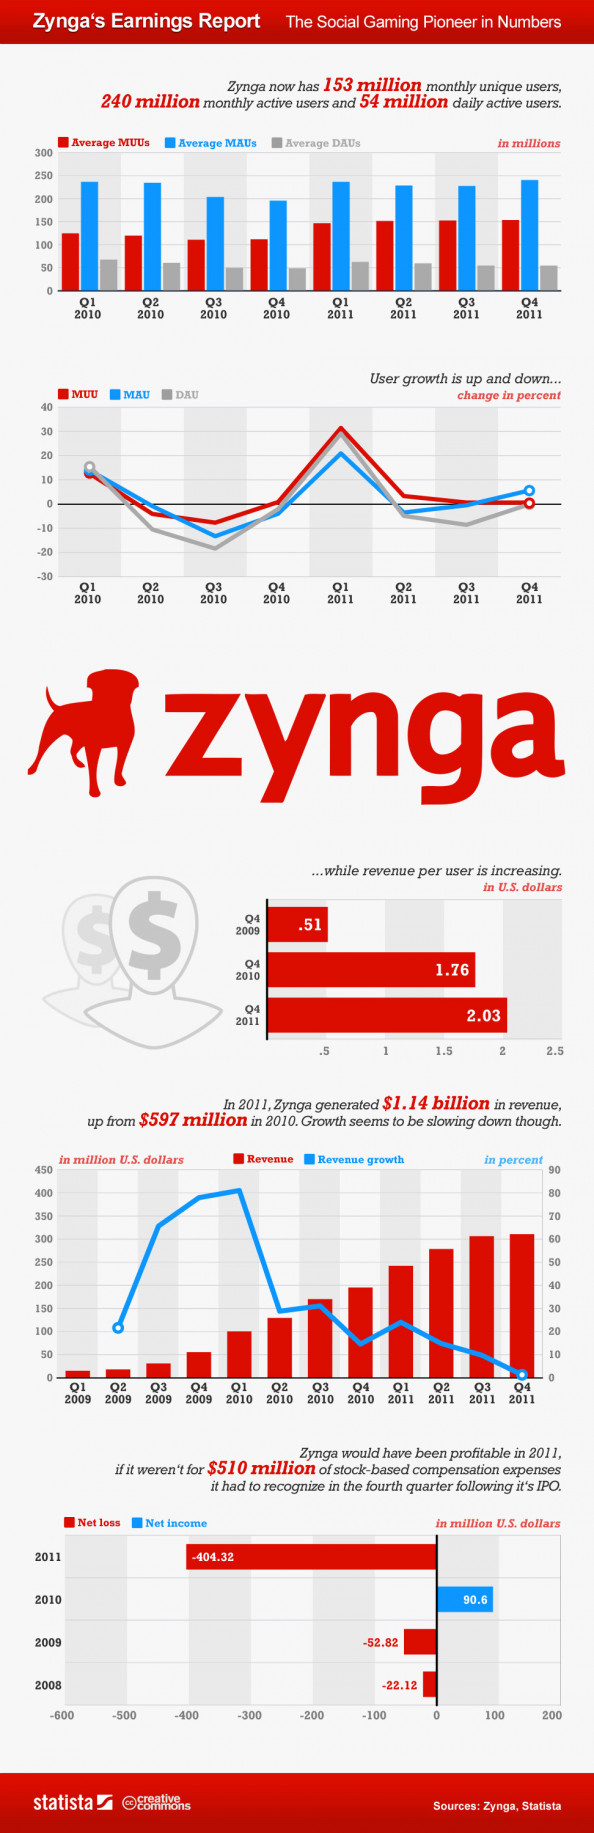 Zynga in Numbers Infographic